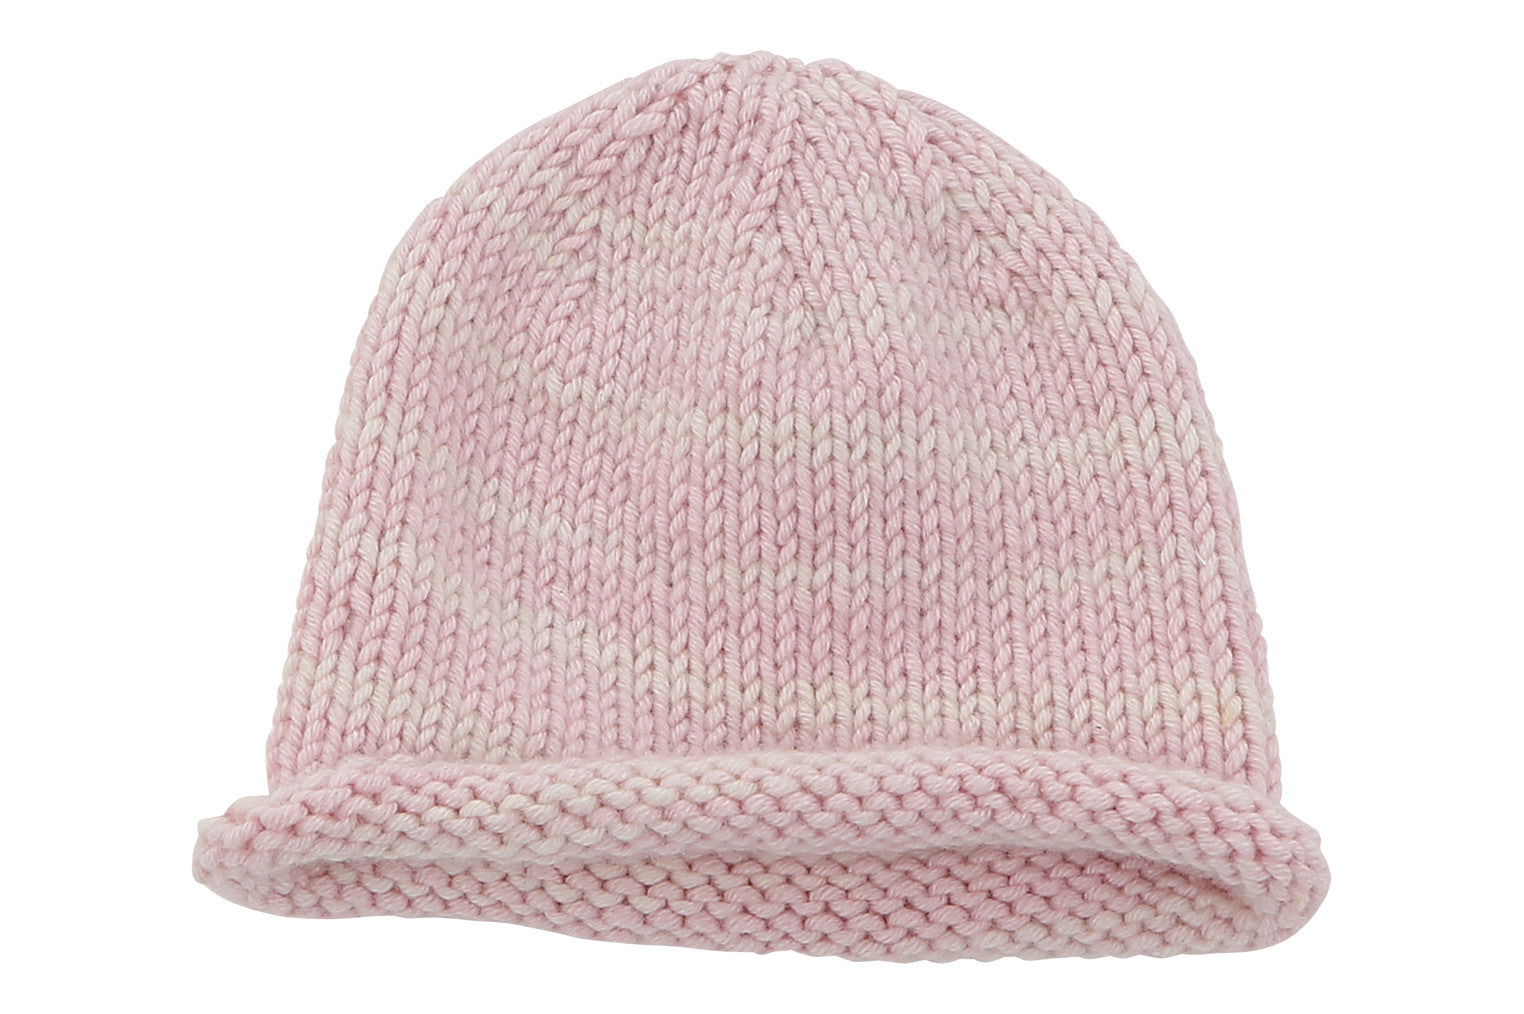 pink cashmere baby hat